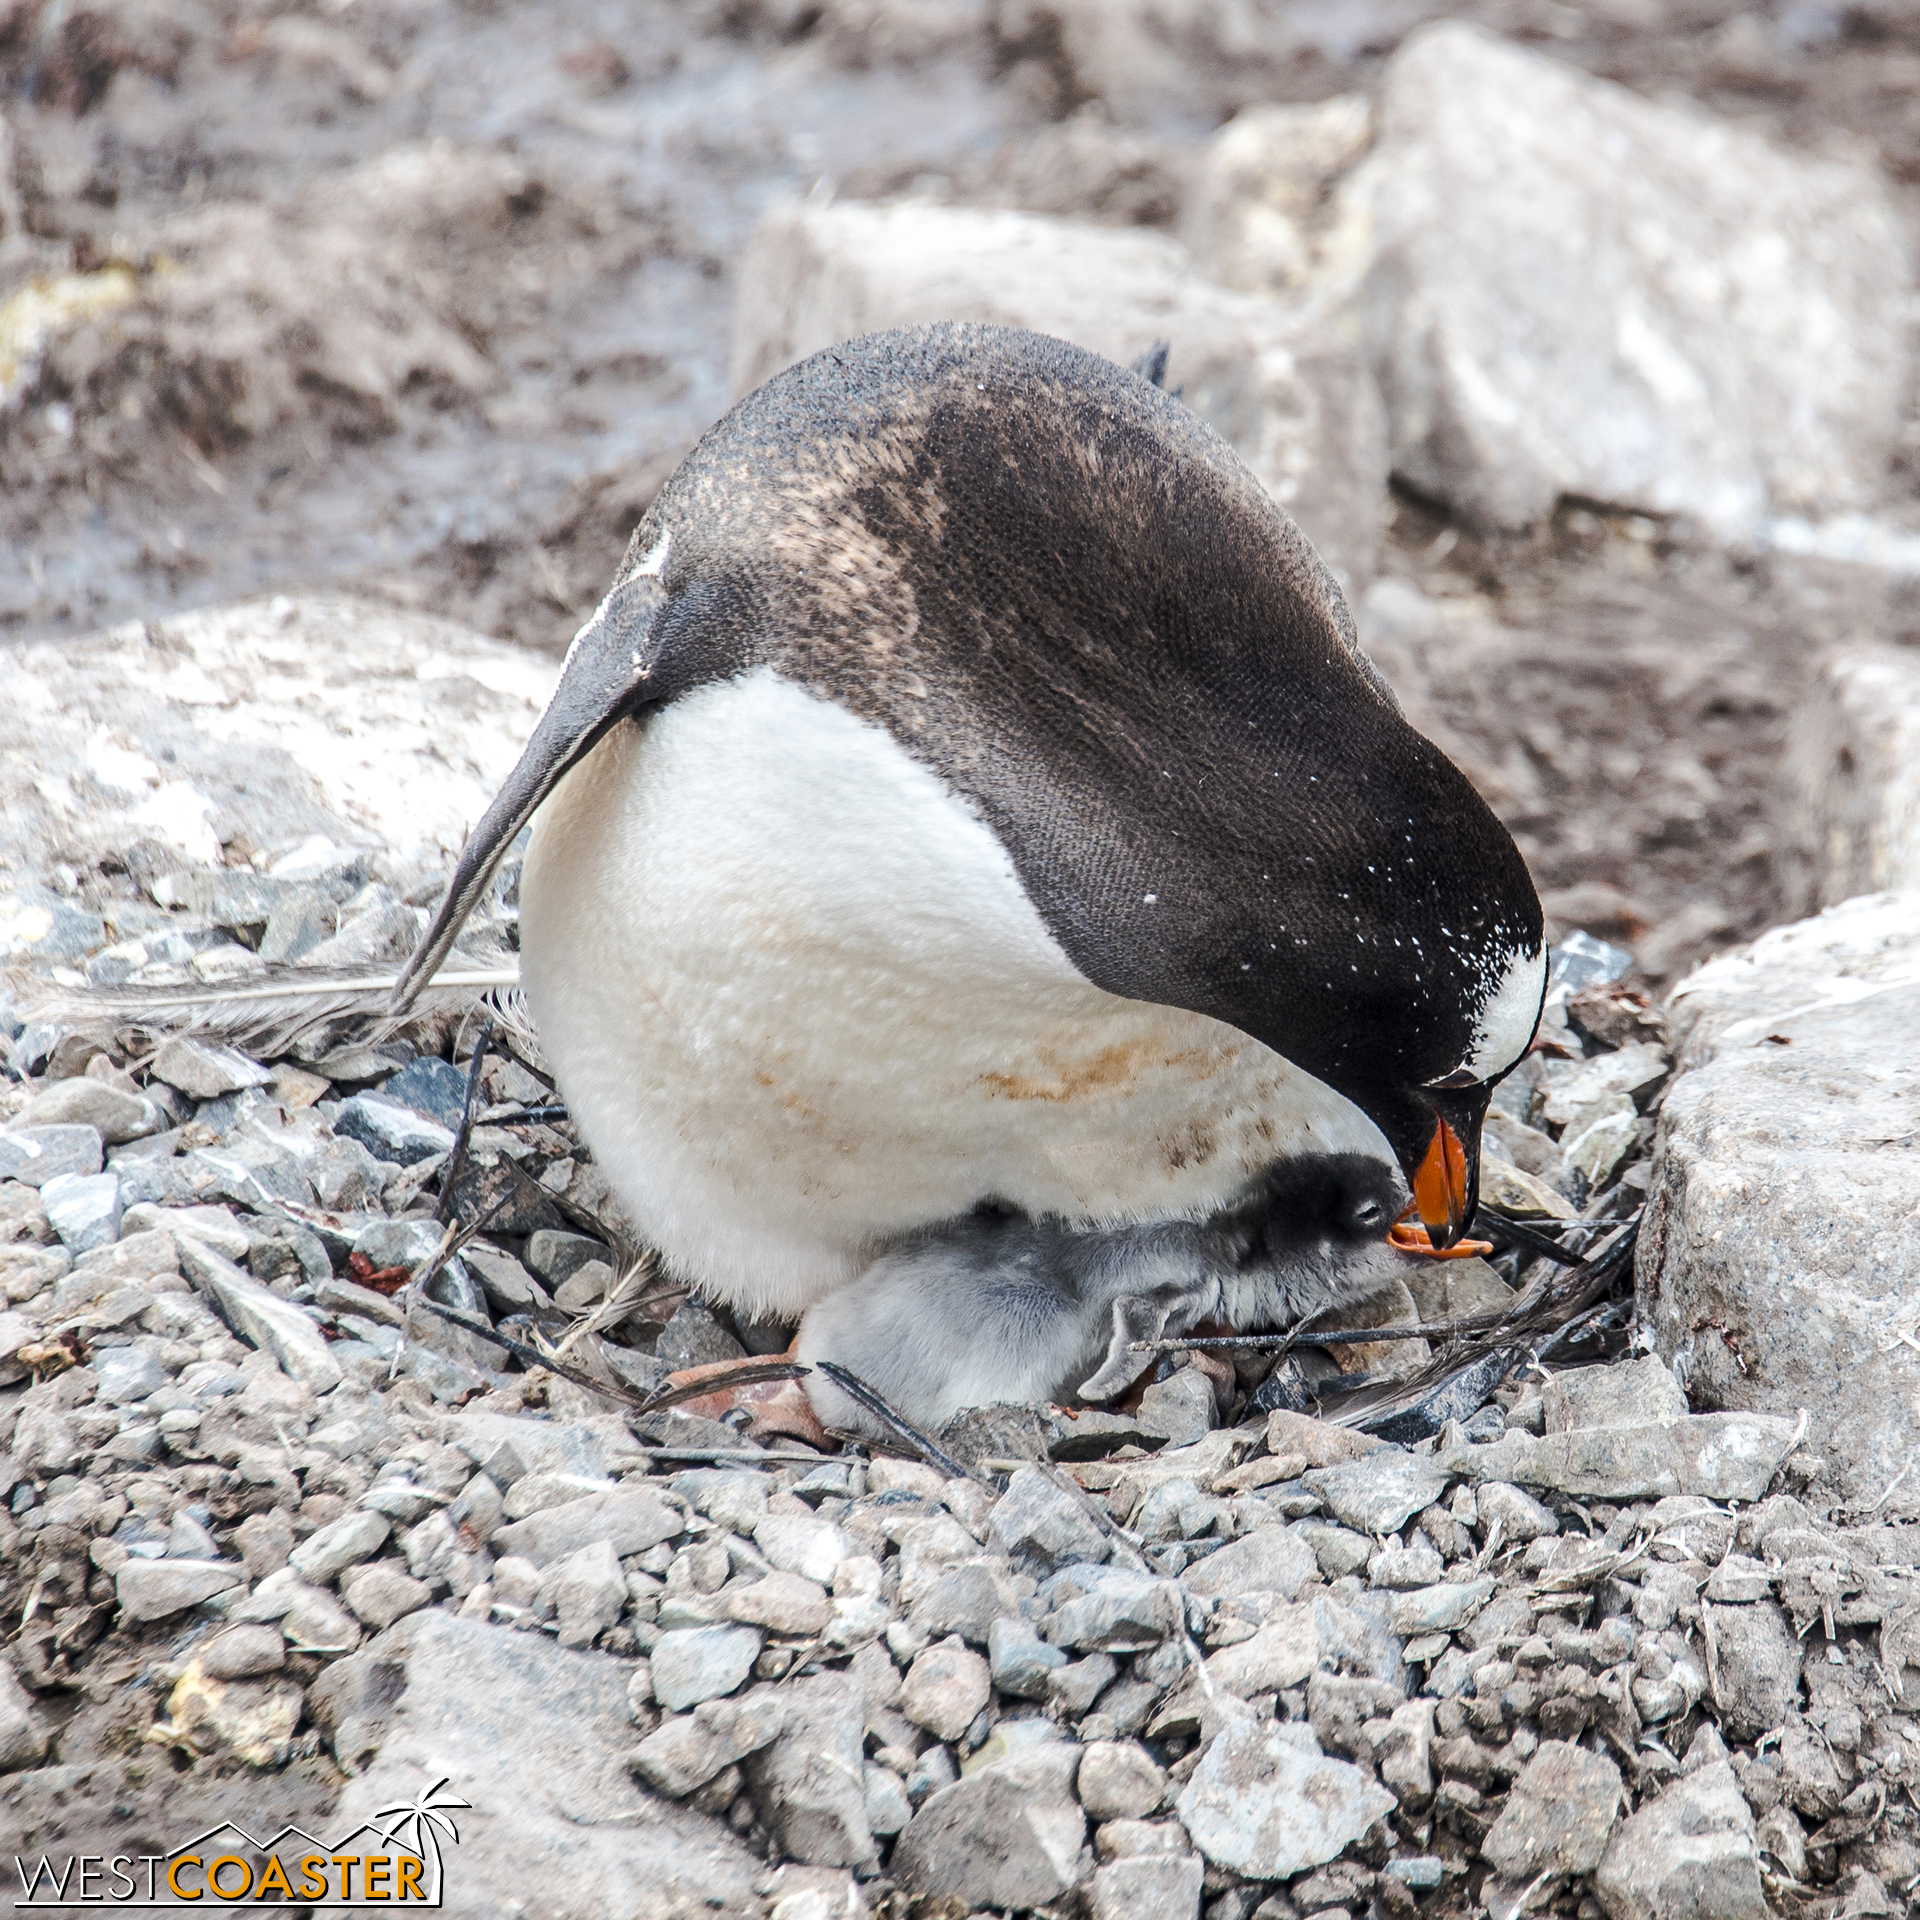 This baby penguin is likely no more than a week old.